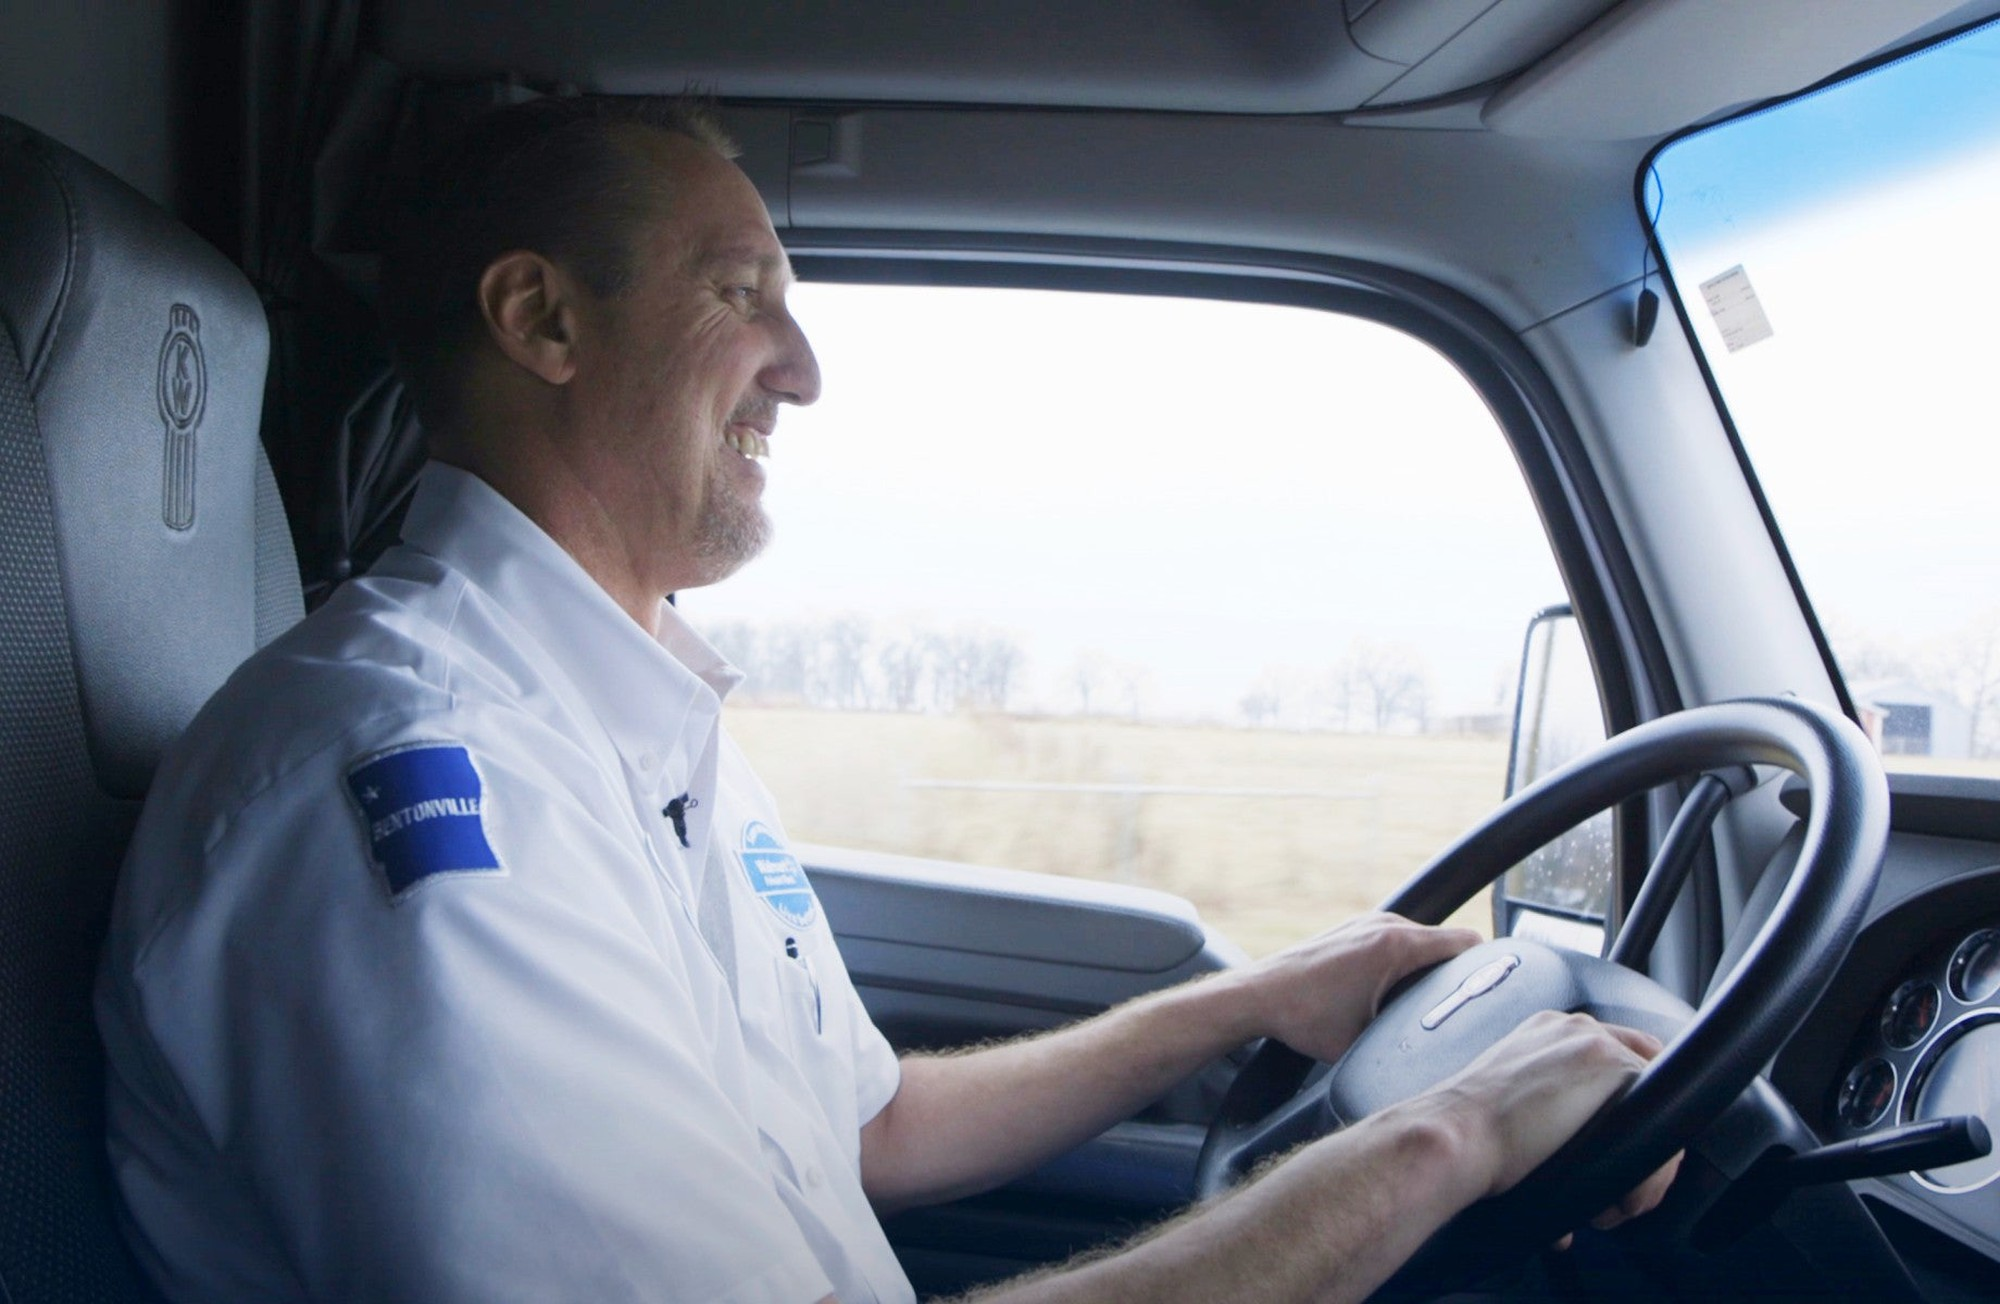 Walmart Hiring 500 More Truck Drivers to Handle Online Sales Growth沃尔玛招500多名卡车司机来处理在线销售增长